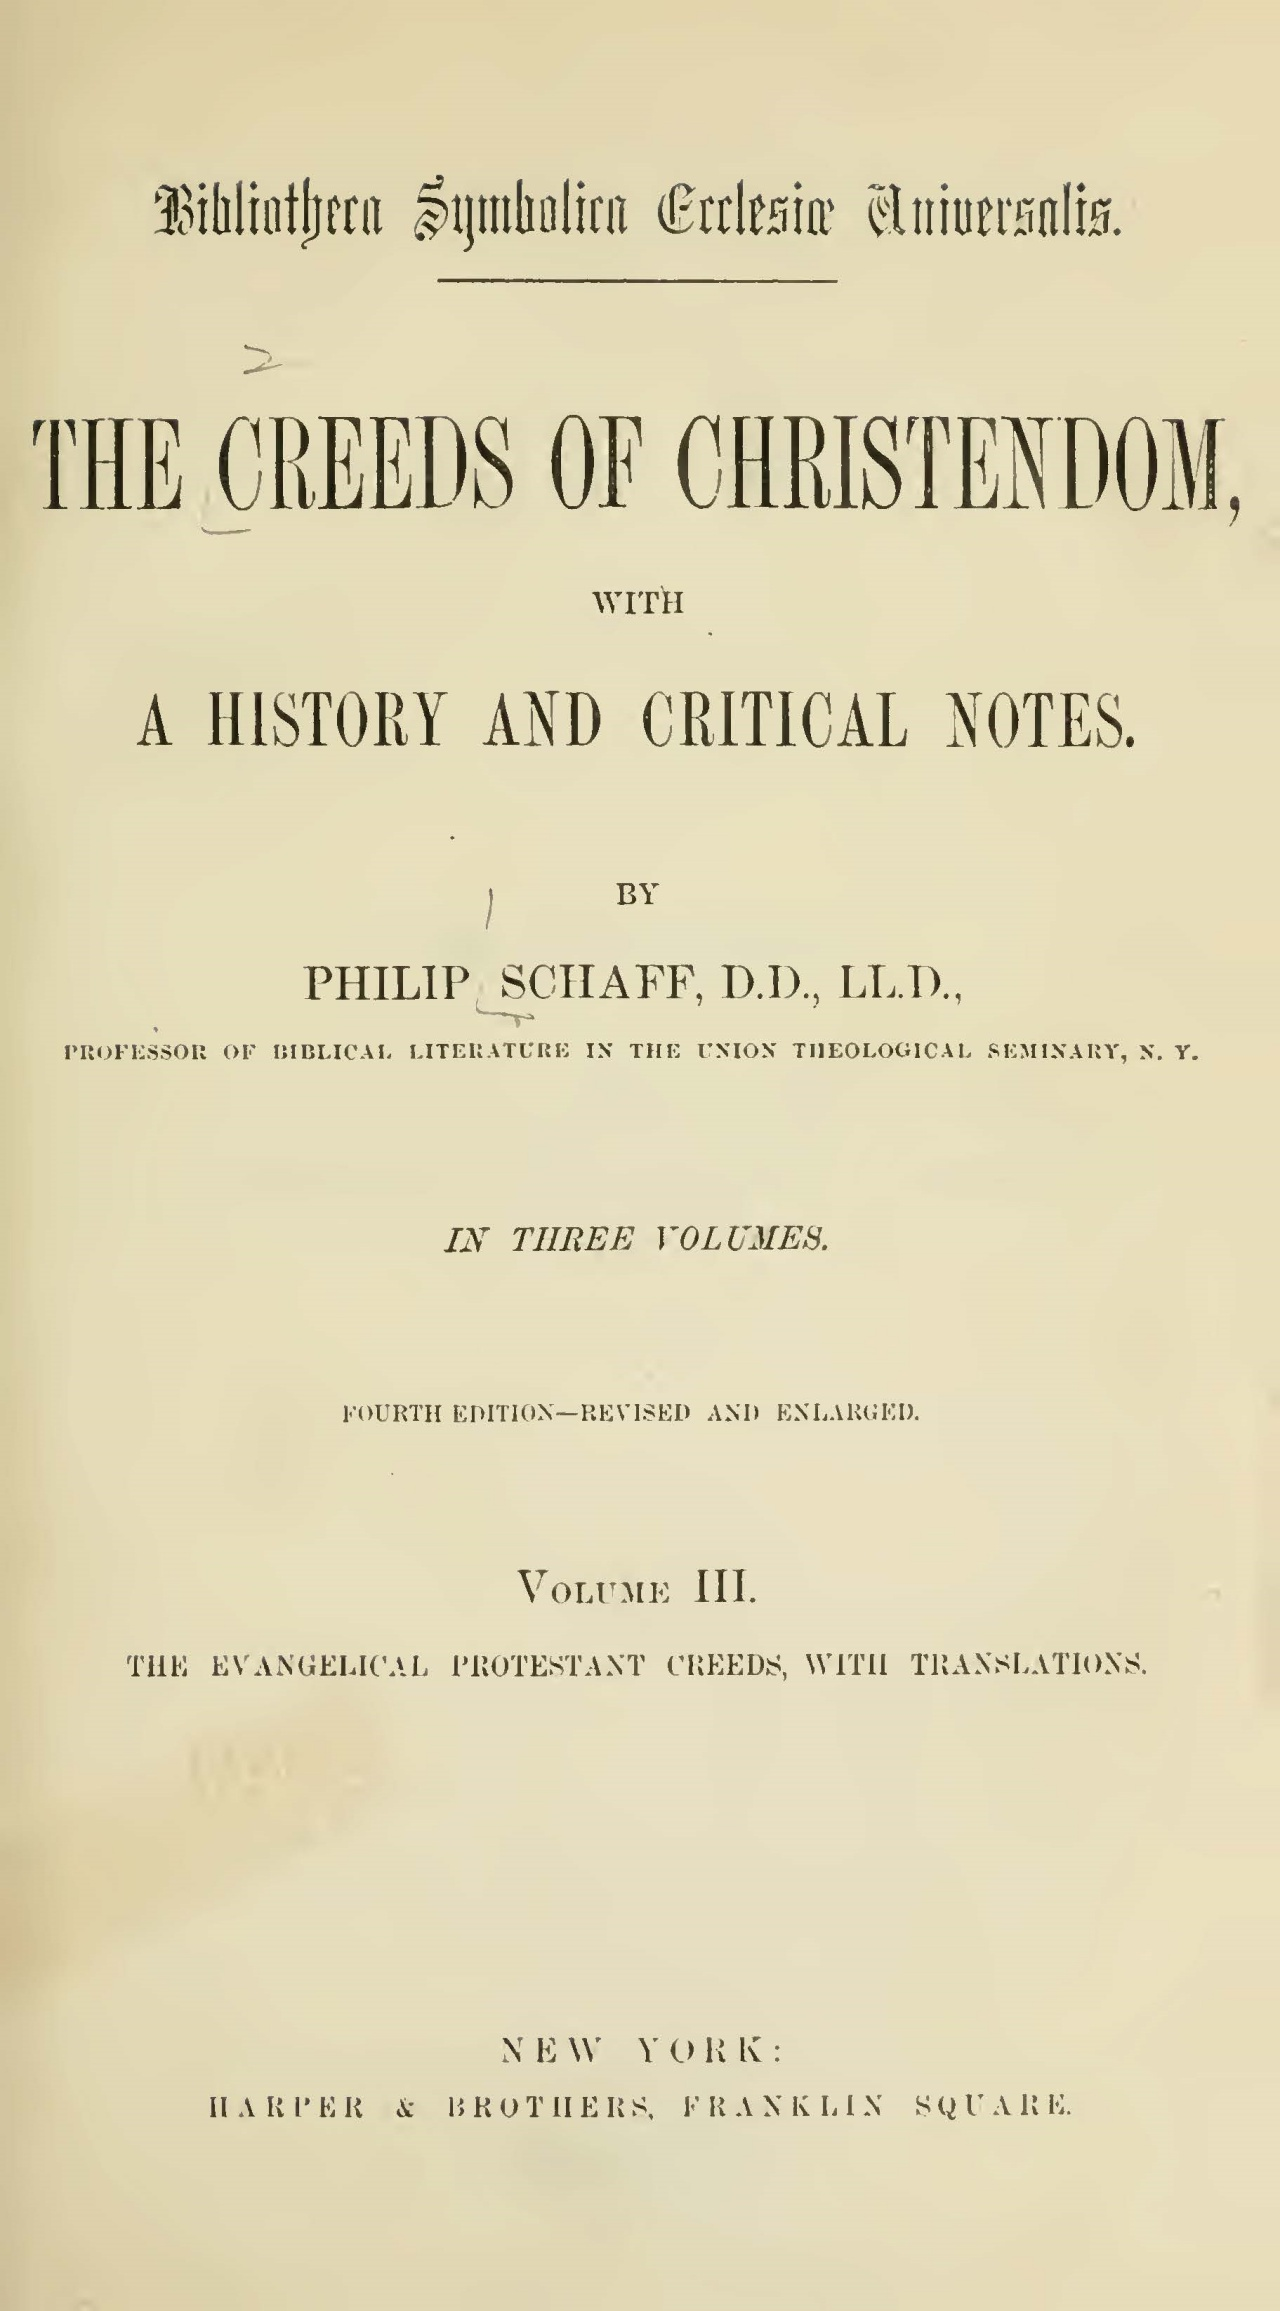 Schaff, Philip, The Creeds of Christendom, Vol. 3 Title Page.jpg